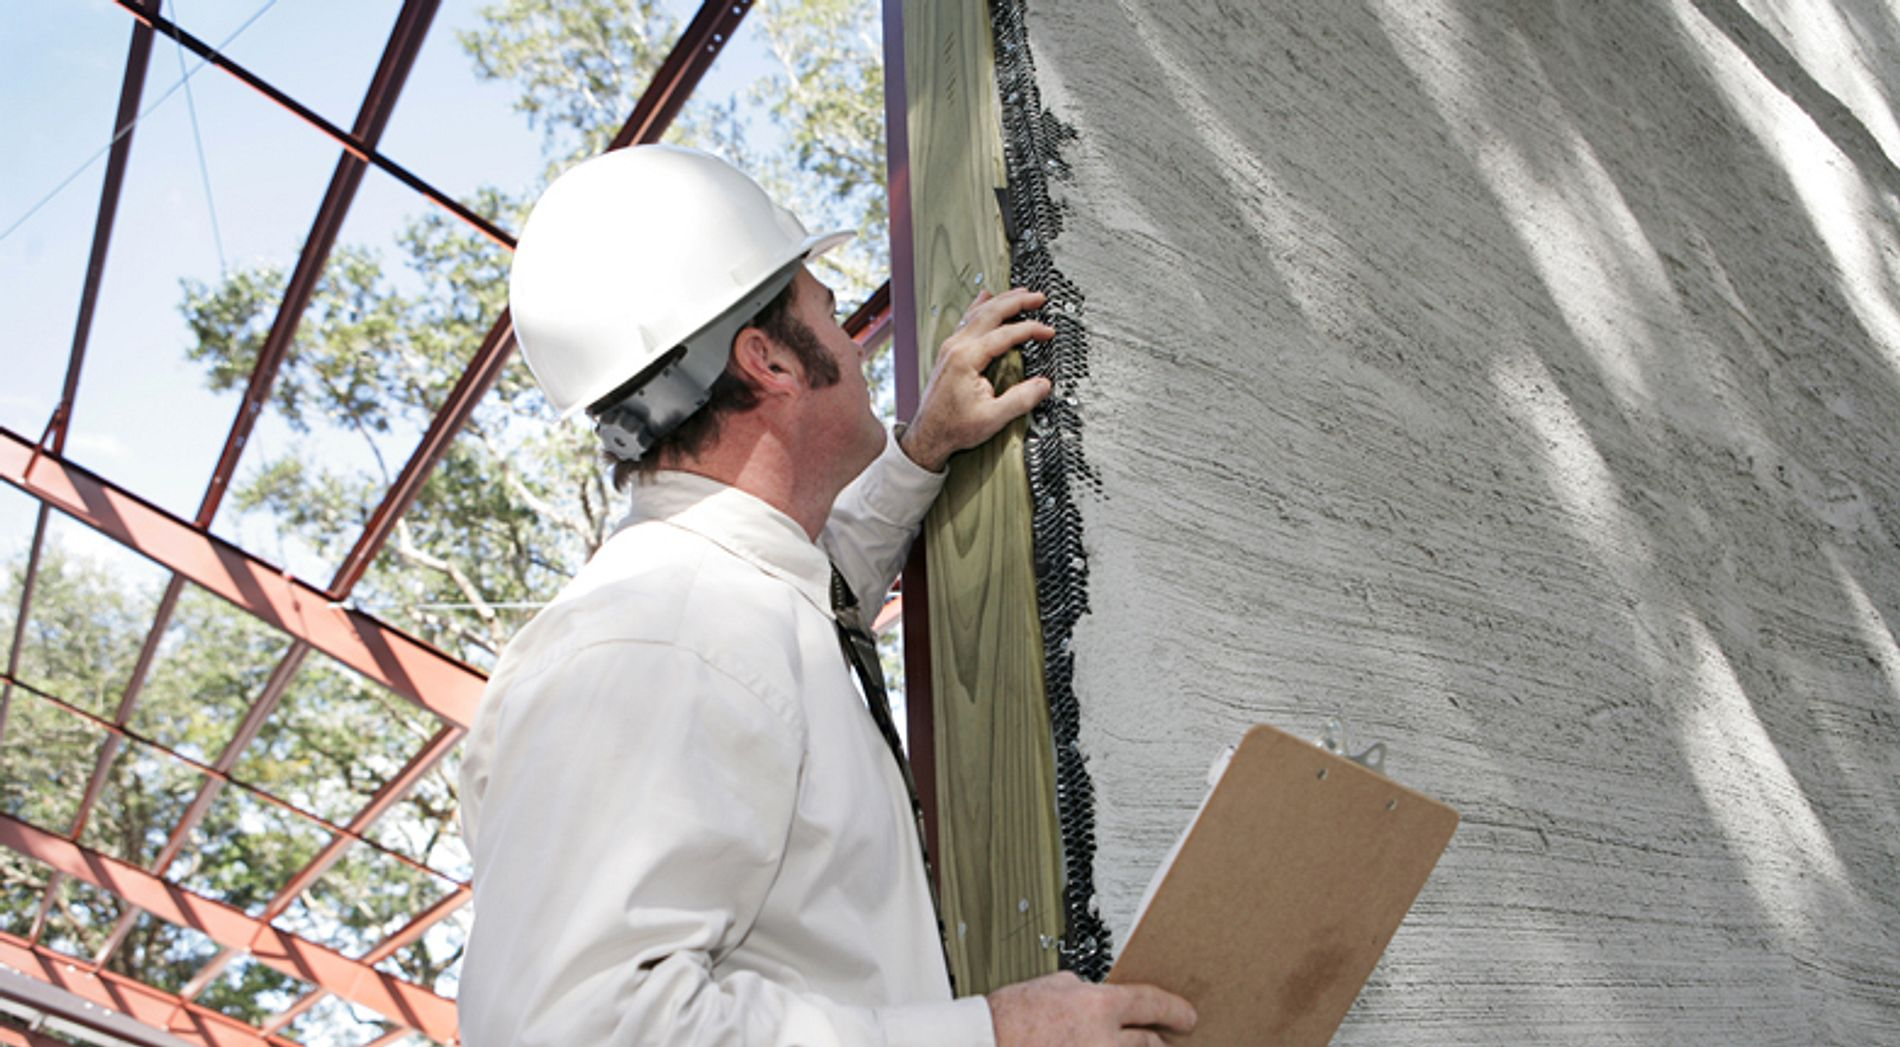 Man inspecting damage to a wall